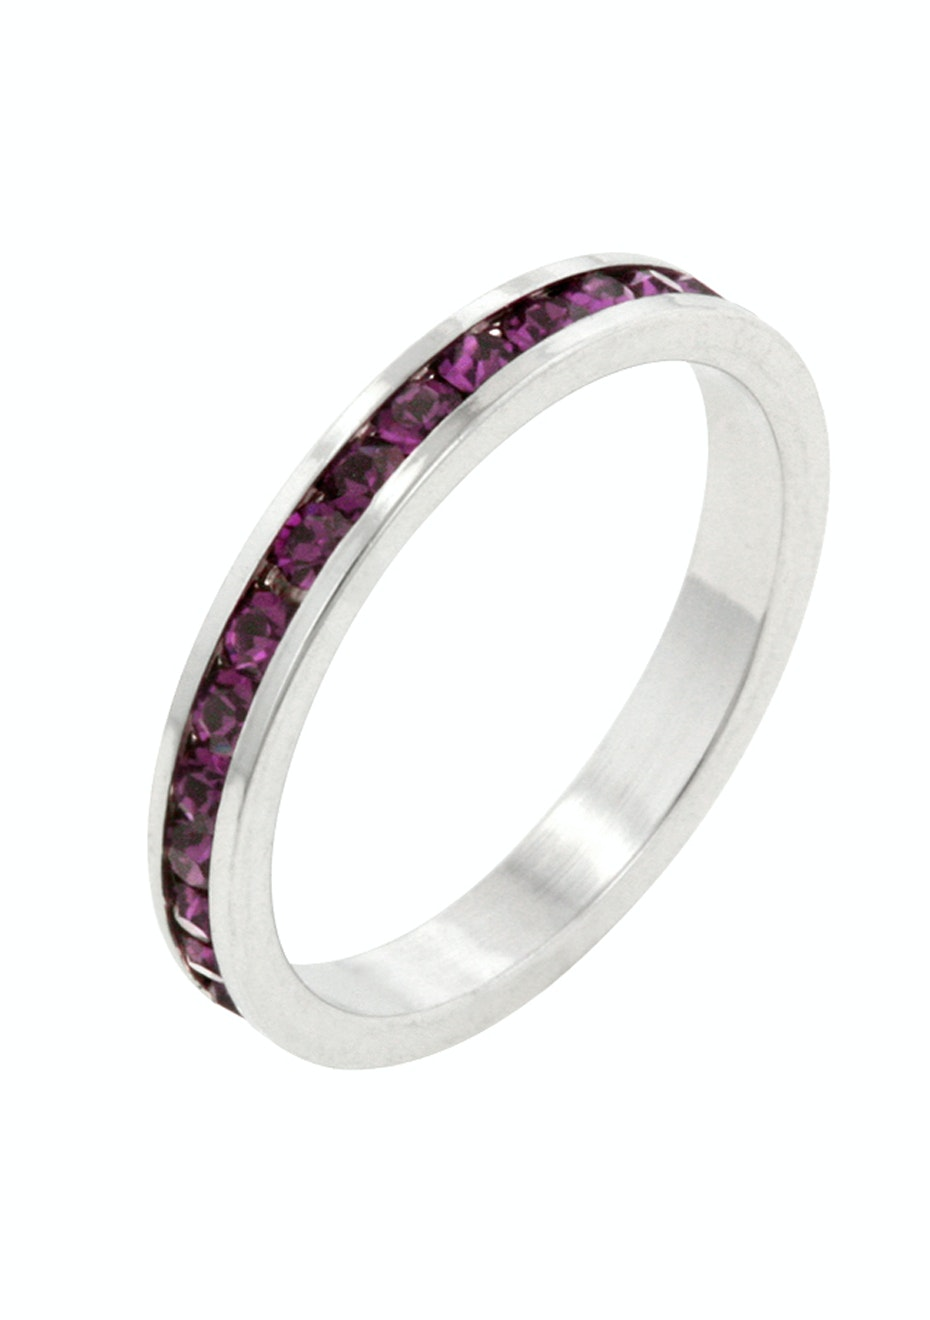 Stackable Ring - White Gold w Purple Embellished with Crystals from Swarovski